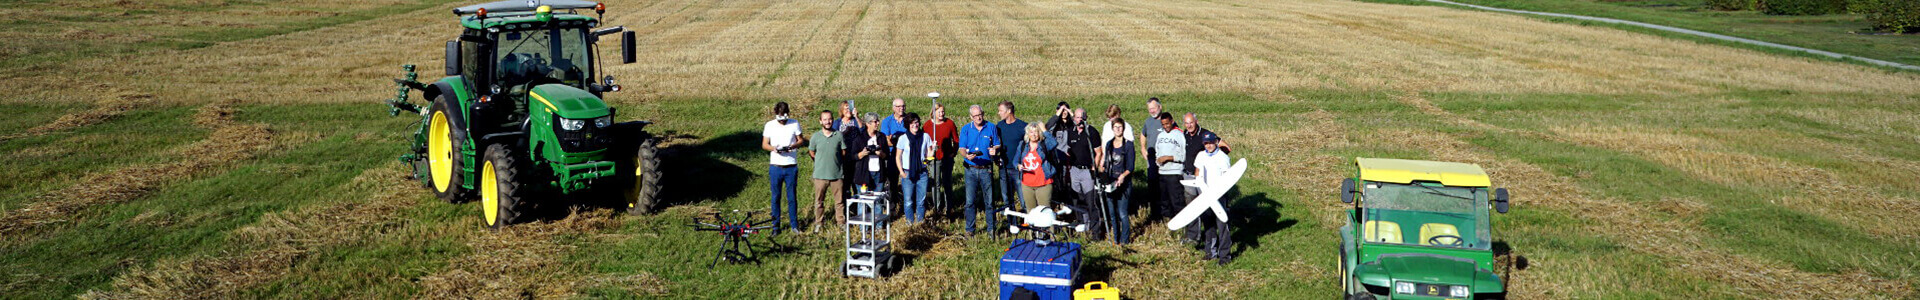 The picture of staff shows the team on a filed with different farming equipment